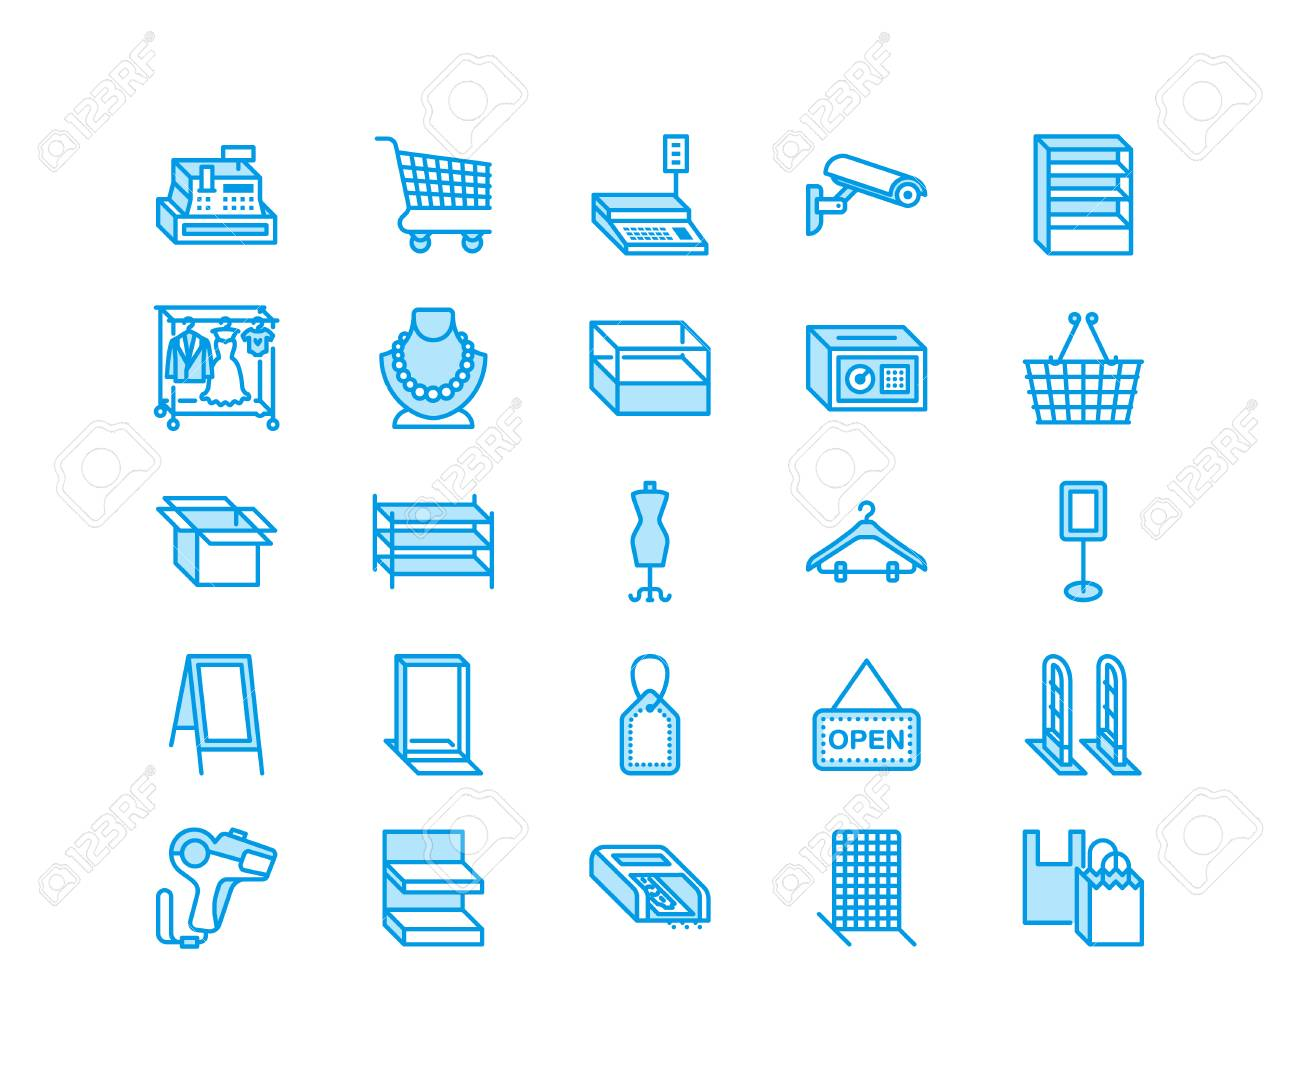 Retail store supplies line icons  Trade shop equipment signs  Commercial  objects - cash register, basket, scales, shopping cart, shelving, display